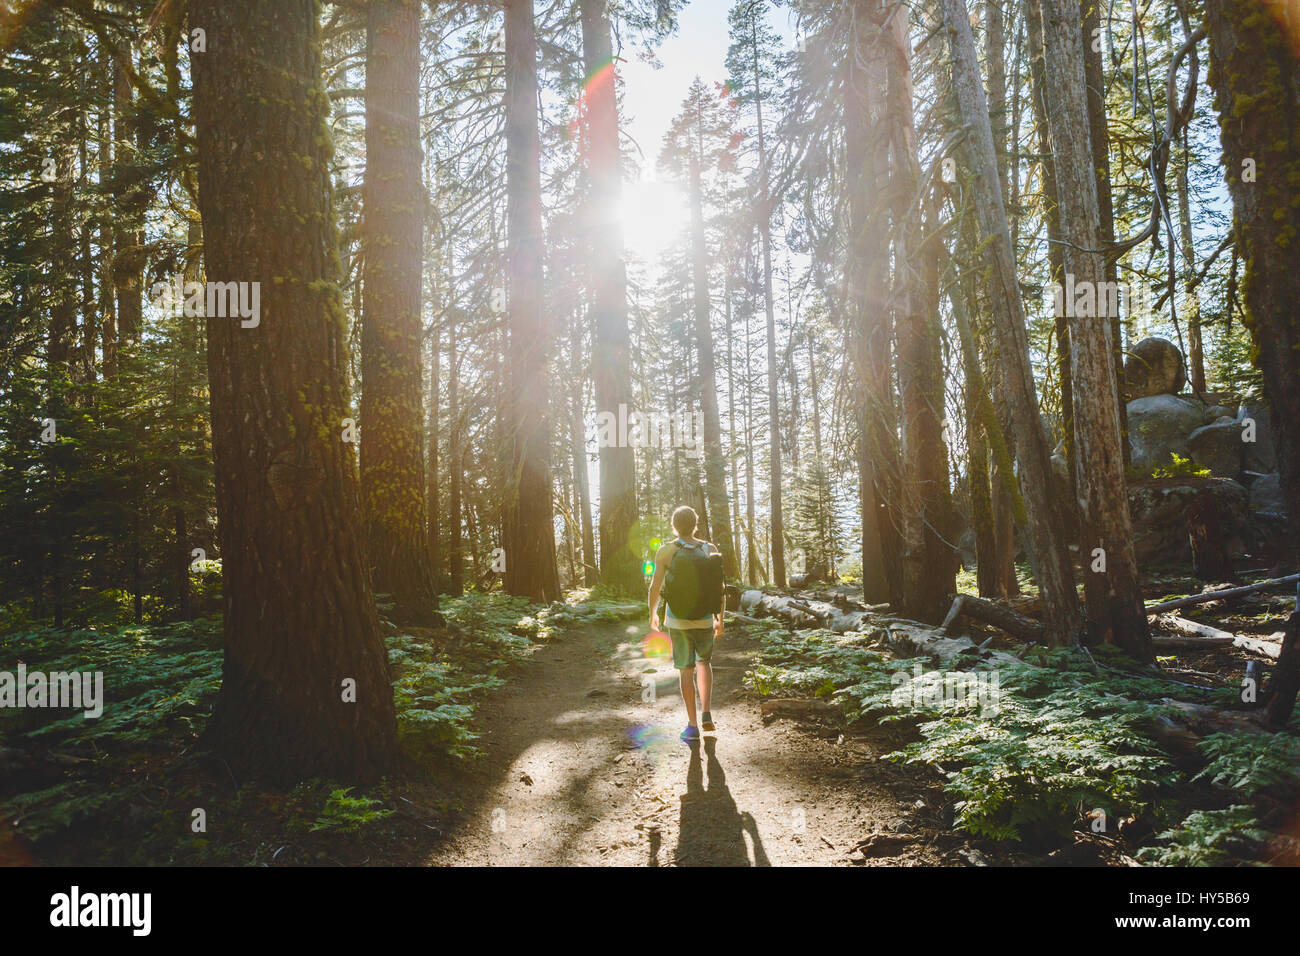 USA, California, Yosemite National Park, Man hiking at Taft Point Trail - Stock Image